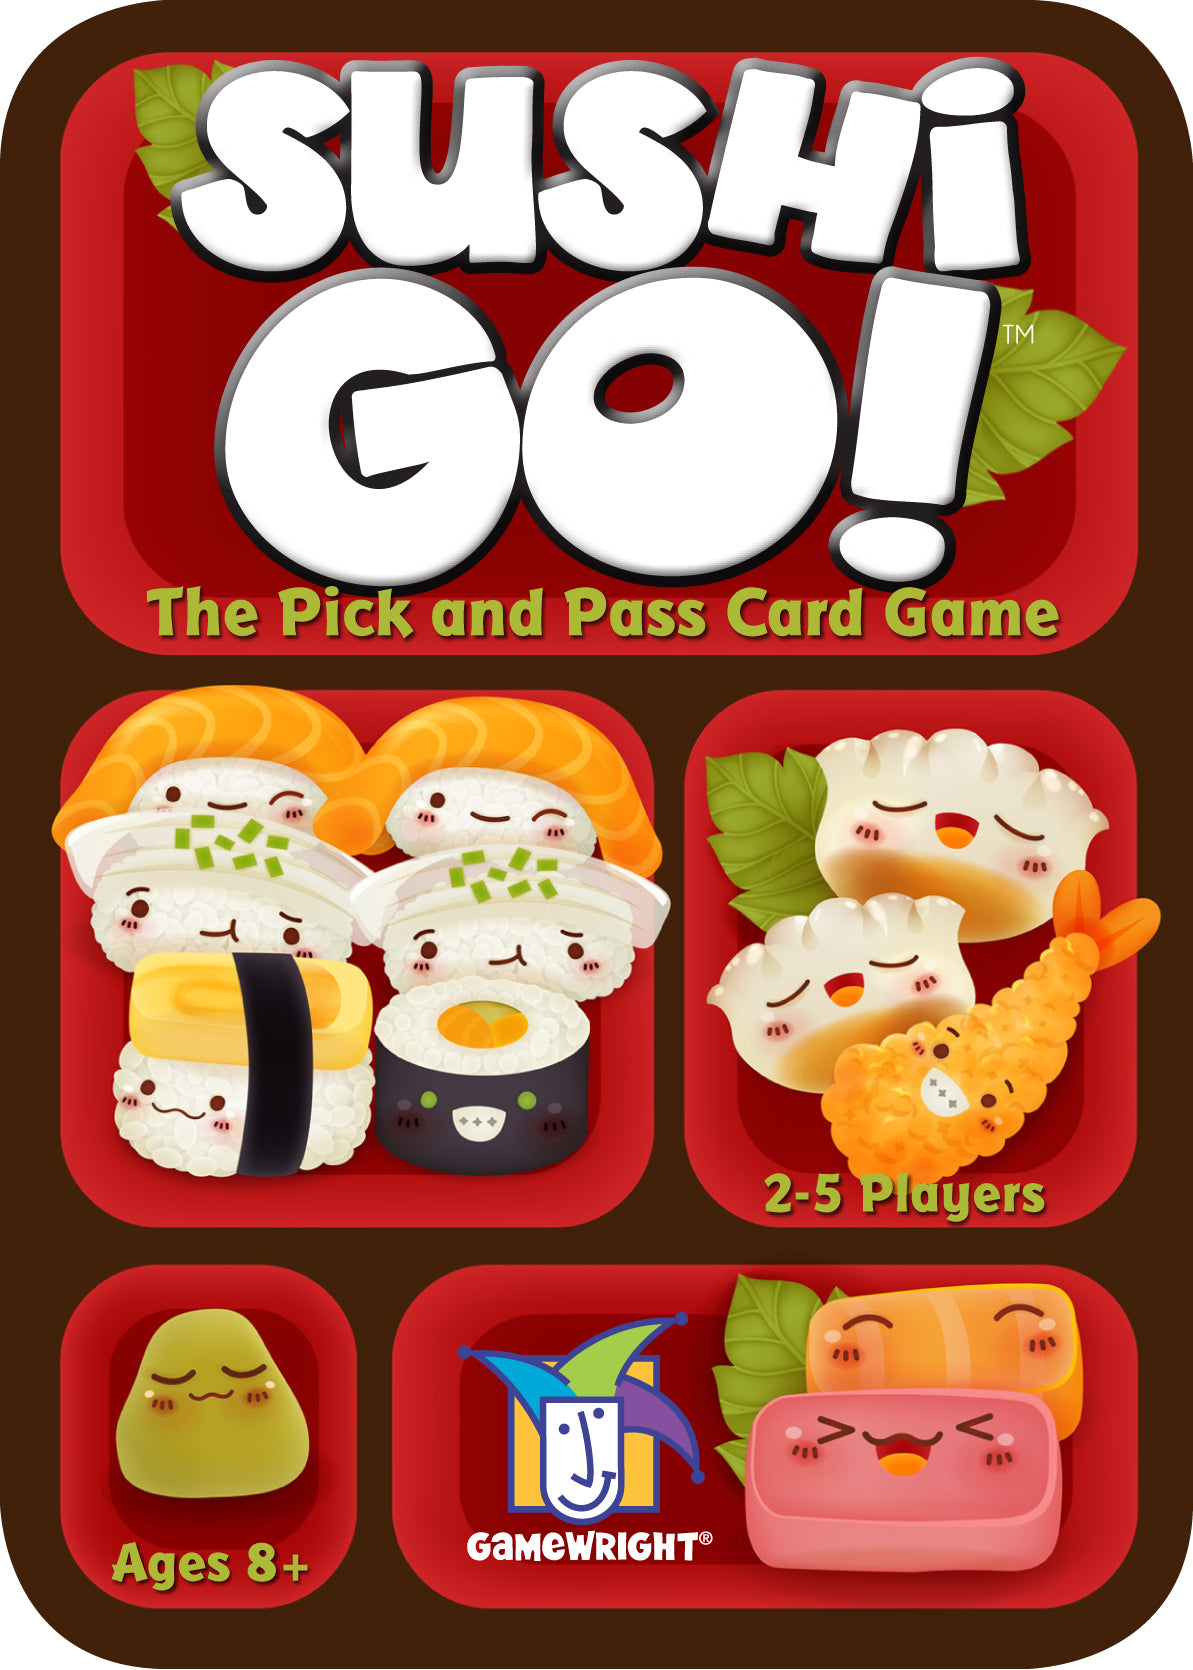 Sushi Go card game box cover